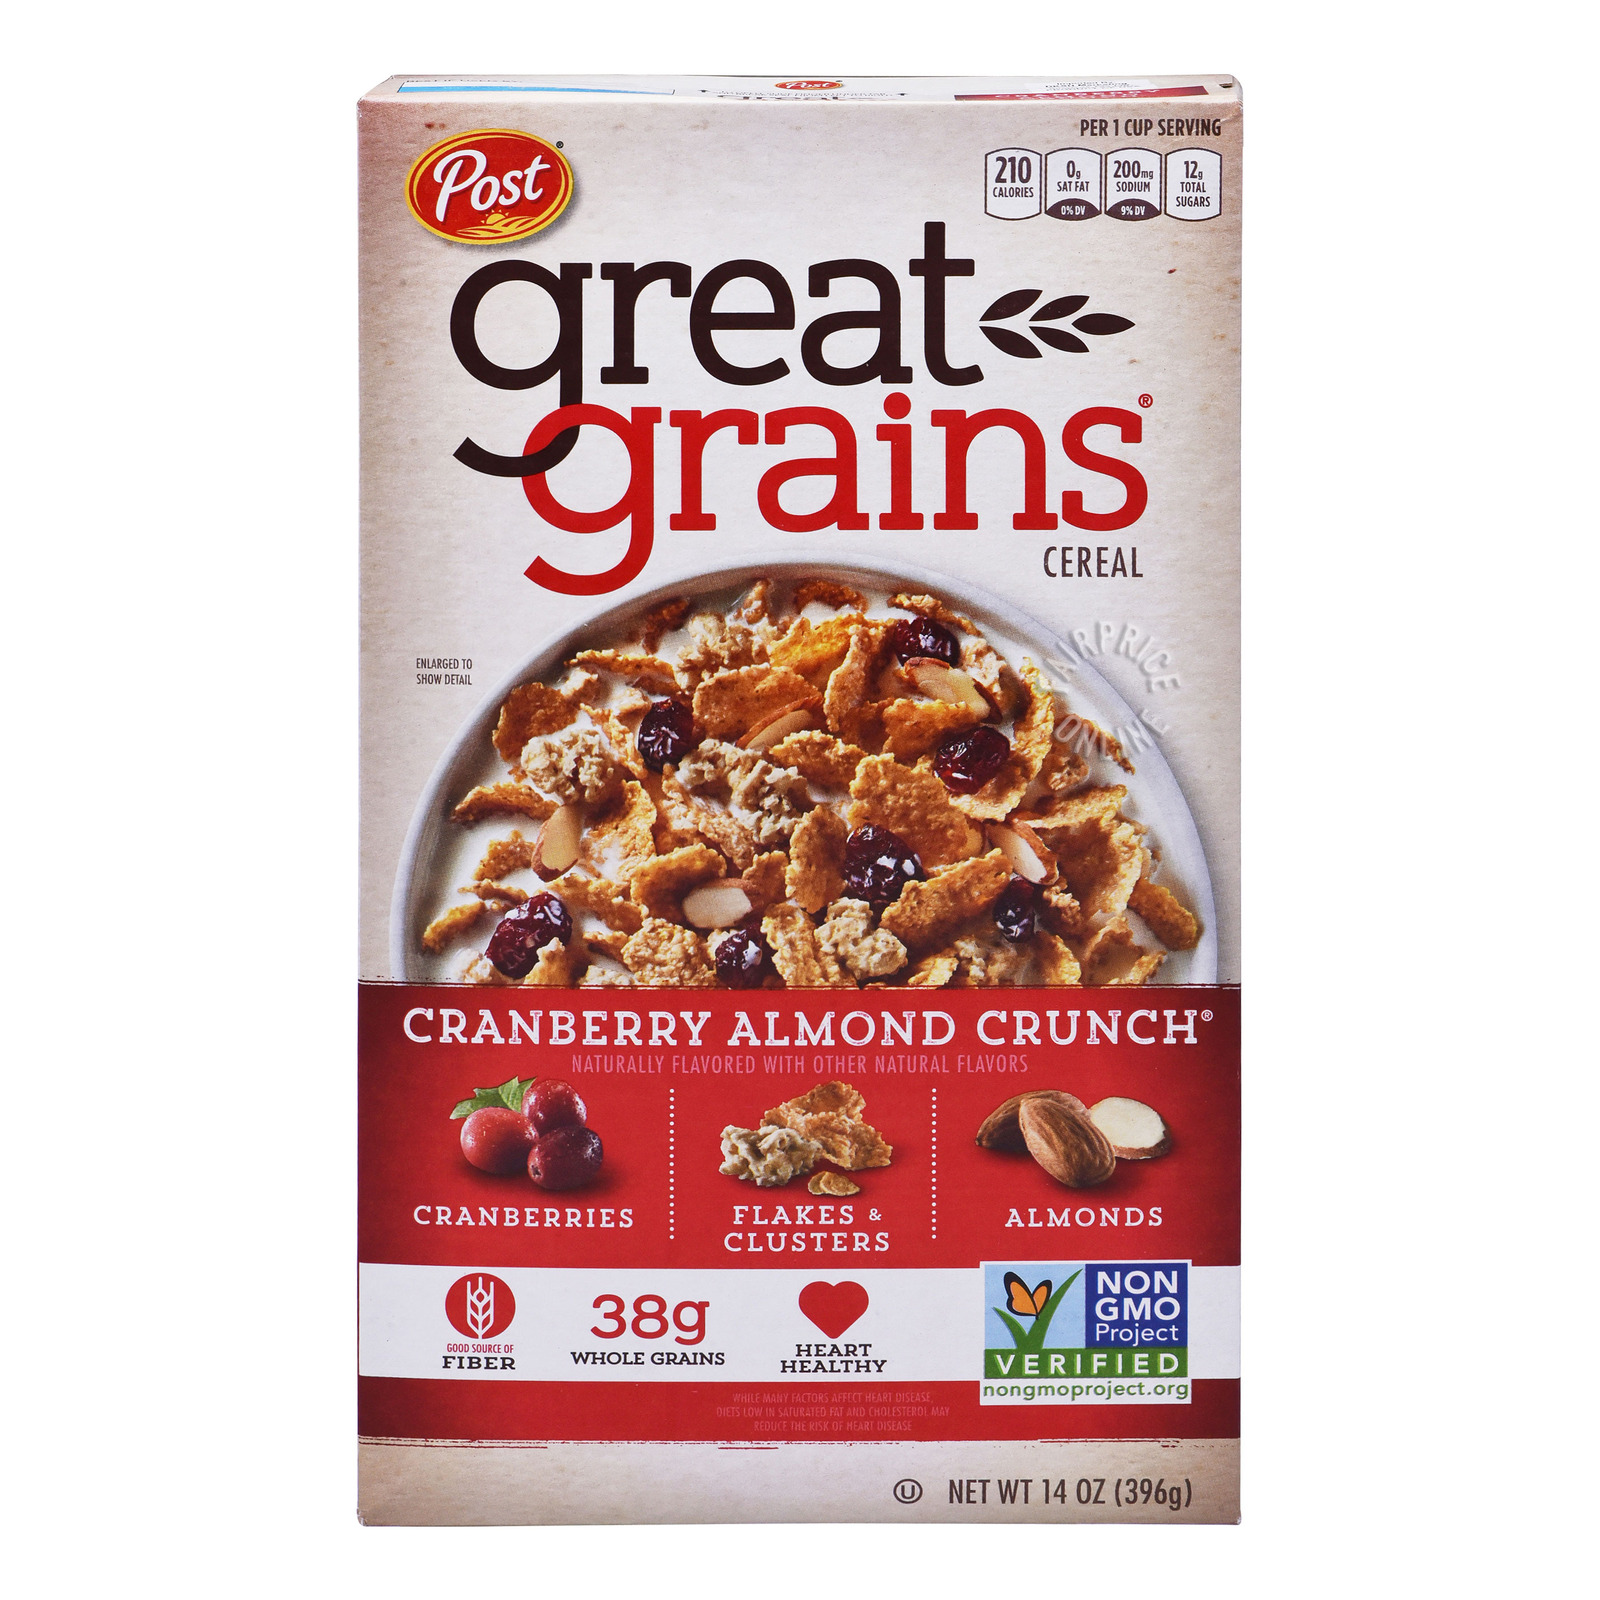 POST Great Grains Cereal - Cranberry Almond Crunch 396g